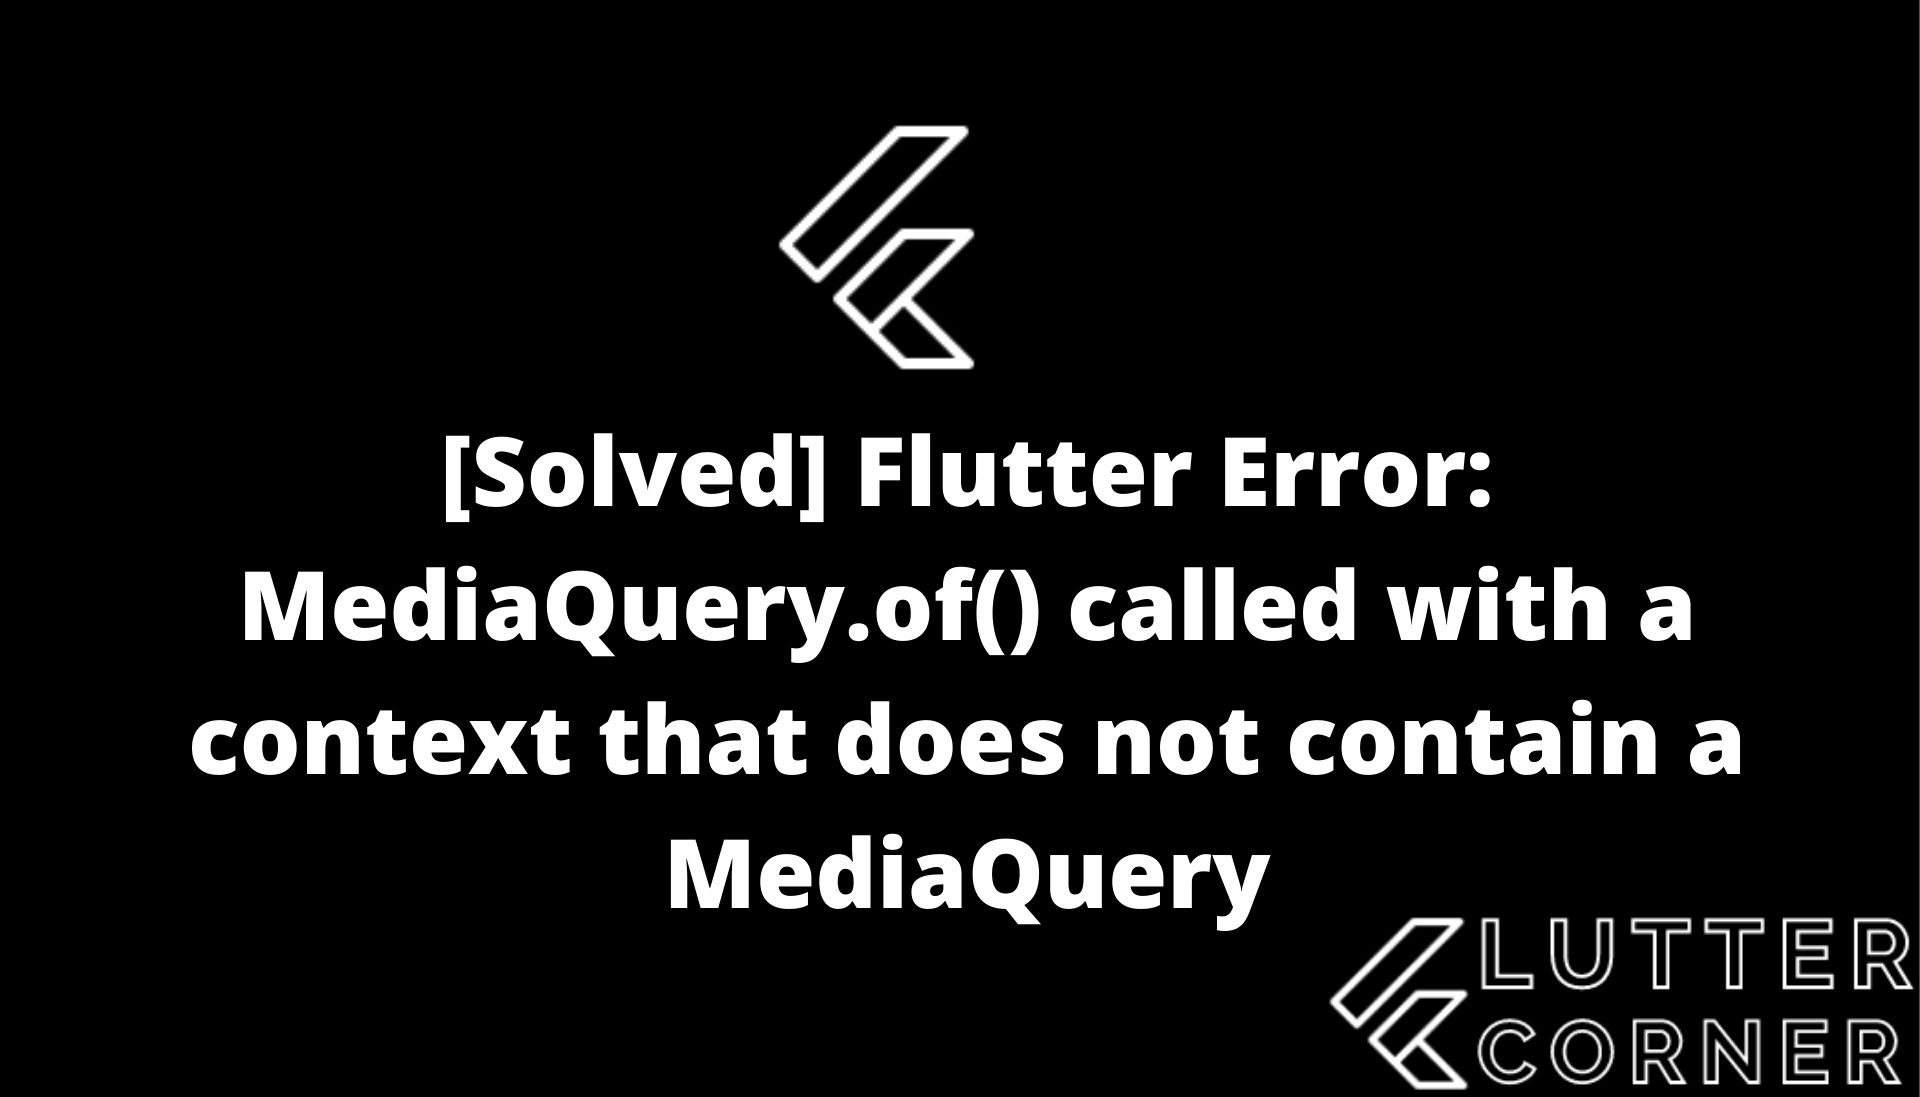 flutter error mediaquery.of, MediaQuery.of() called with a context that does not contain in flutter, flutter error : MediaQuery.of() called with a context that does not contain MediaQuery, MediaQuery.of() called with a context that does not contain a MediaQuery